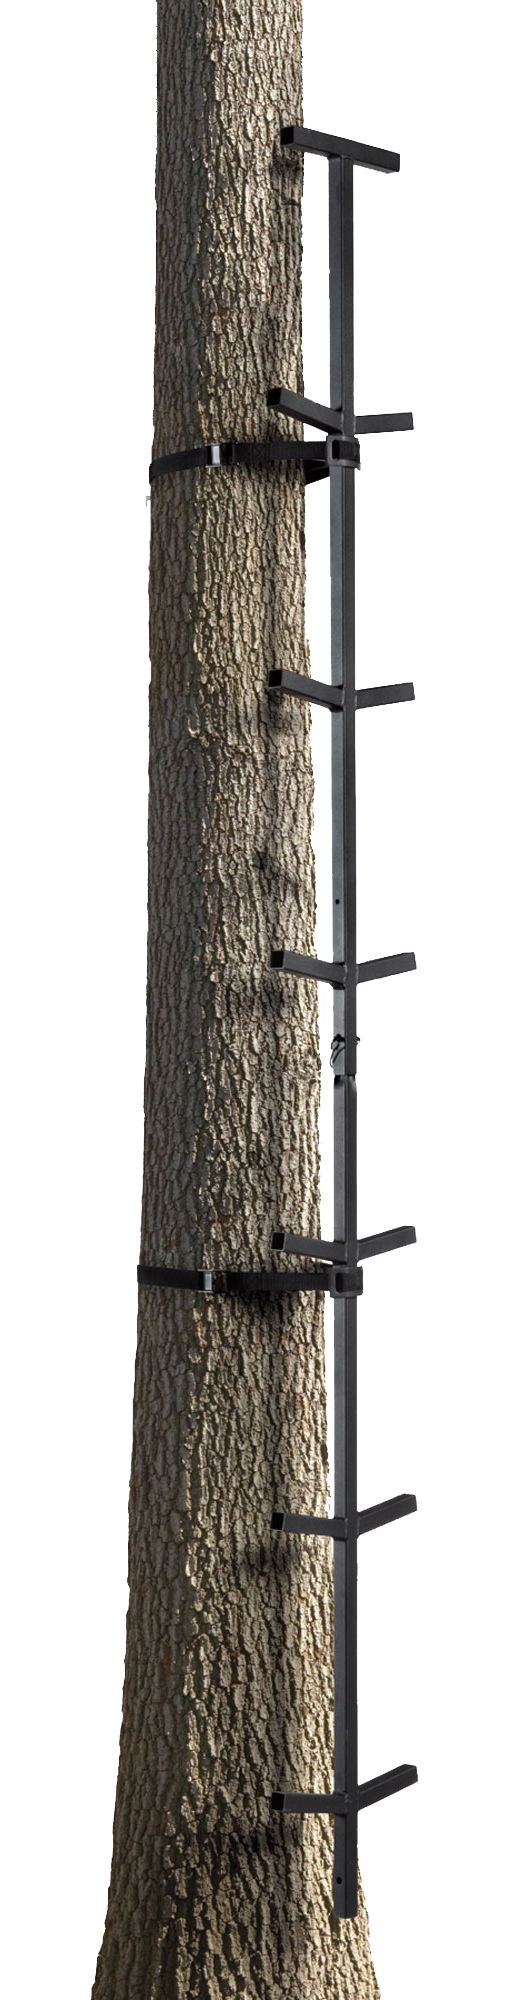 Field & Stream 20-Foot Climbing Sticks thumbnail